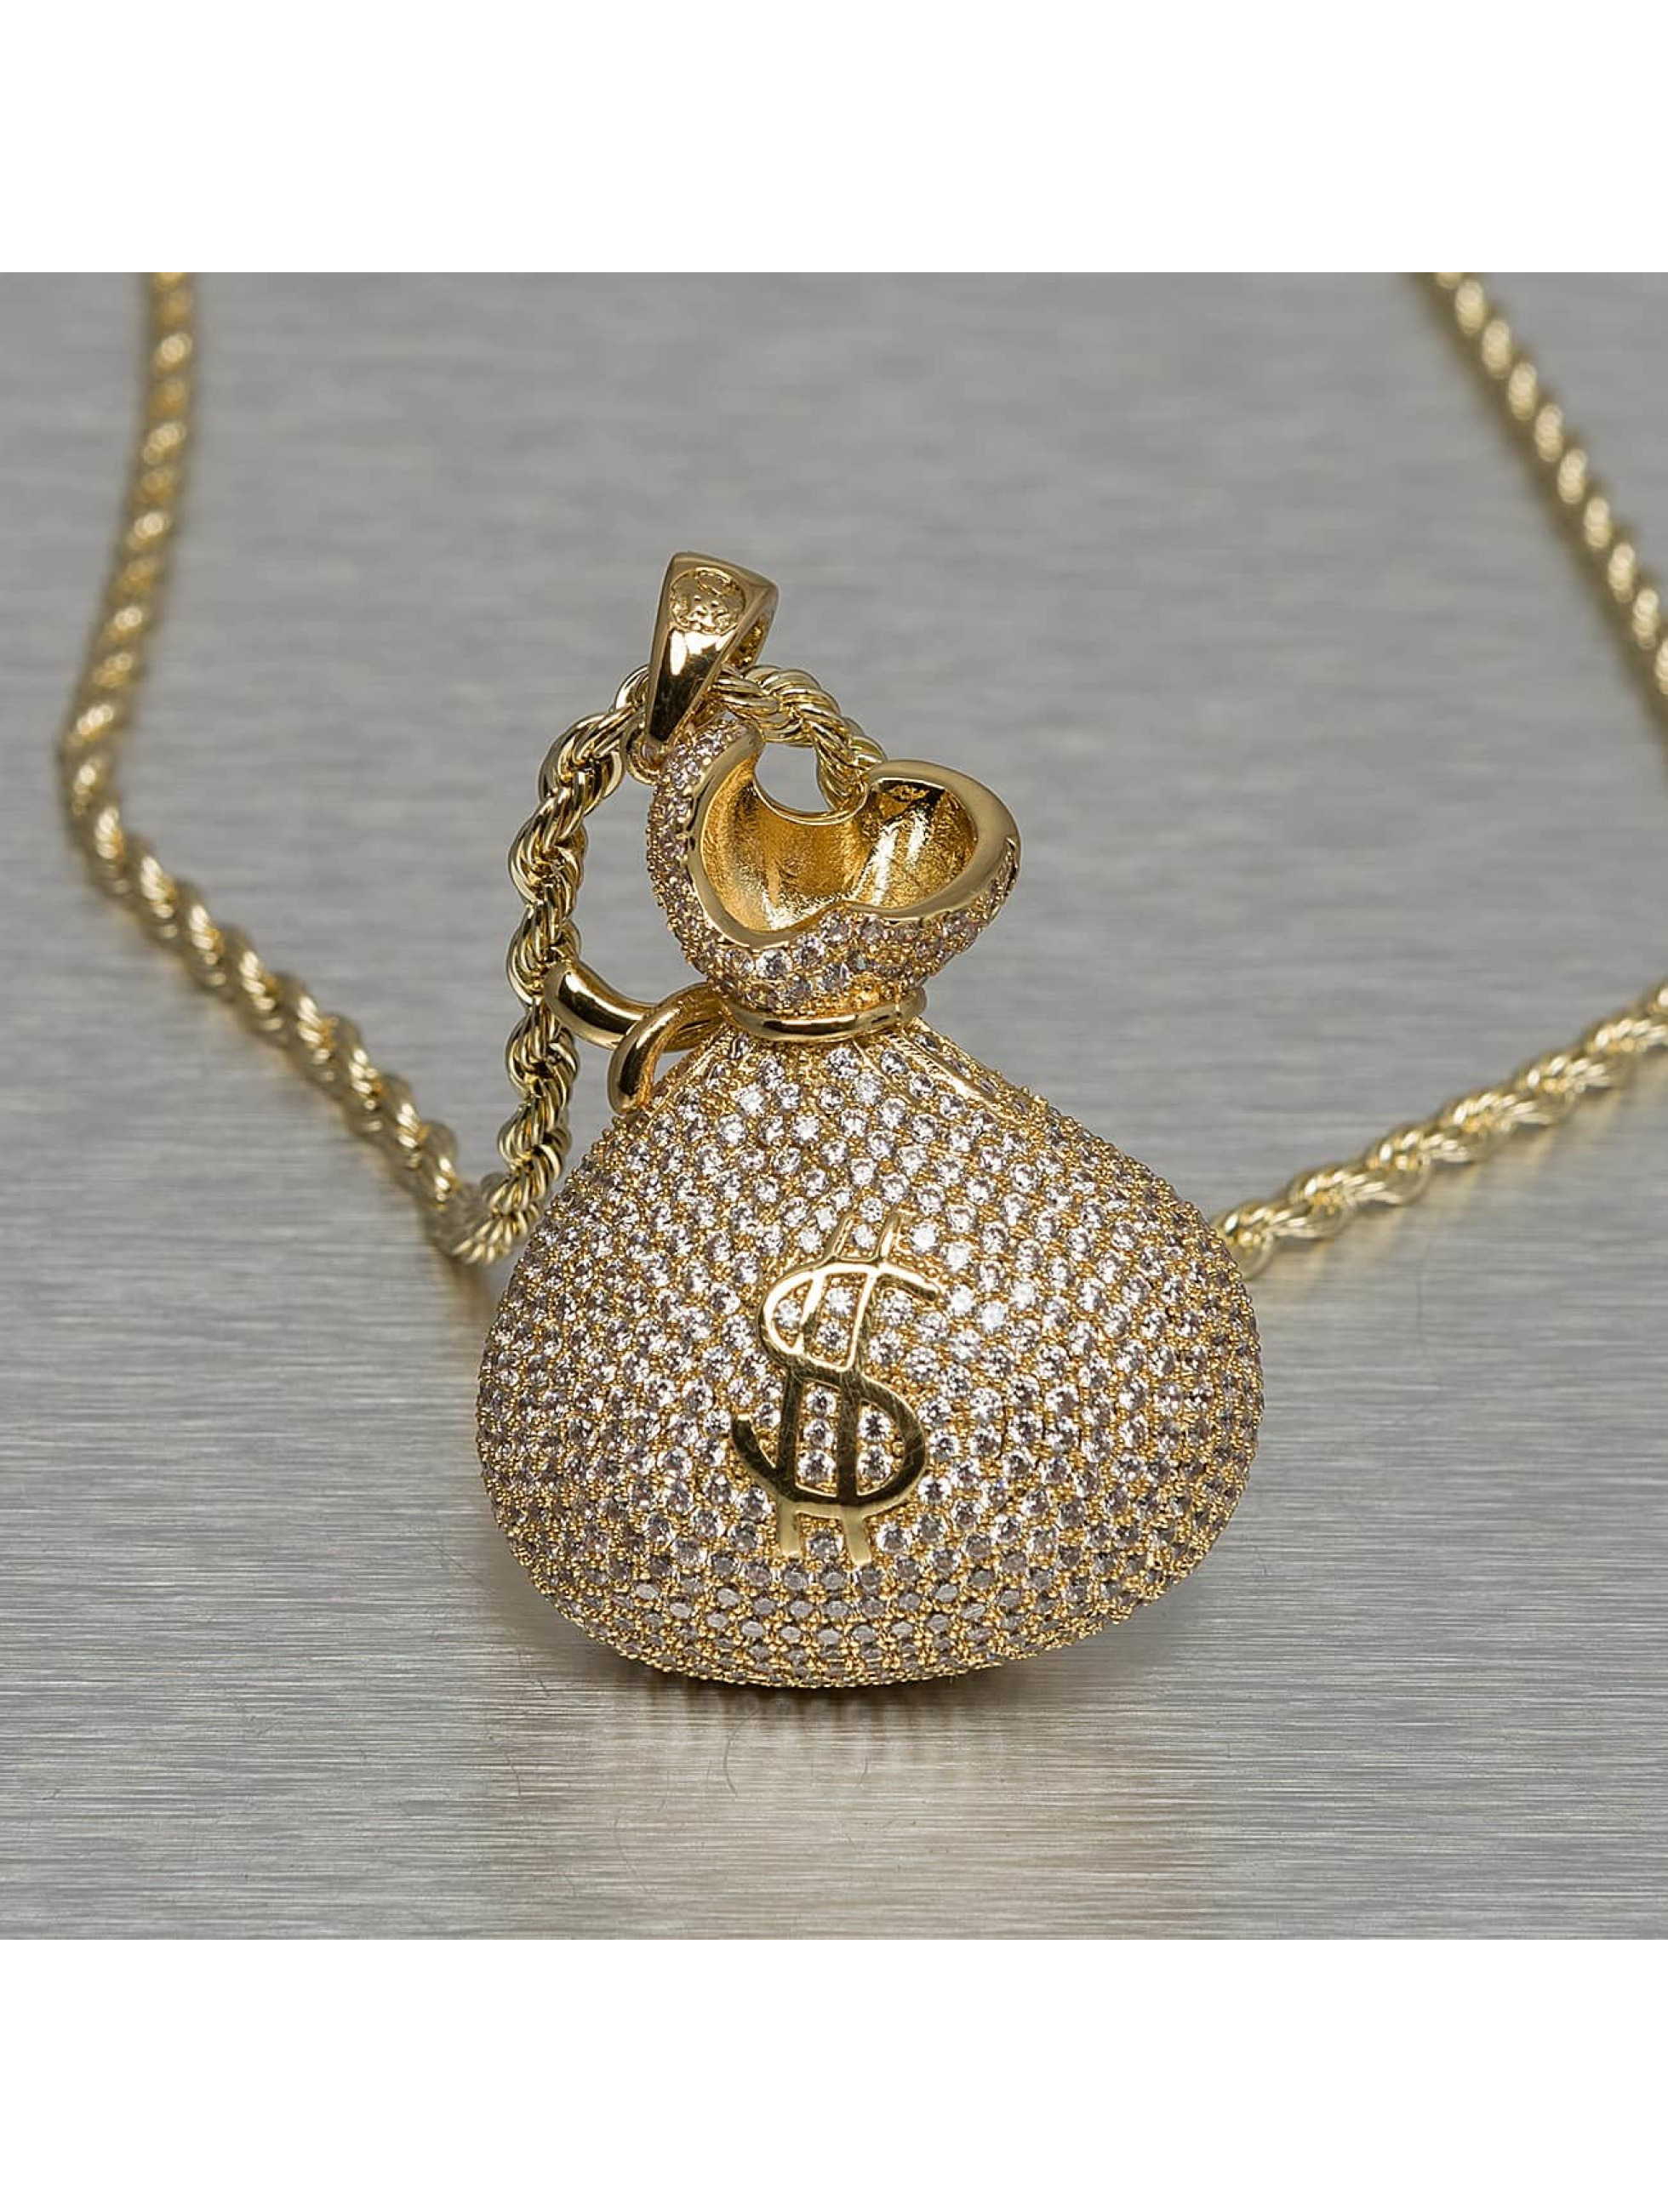 "KING ICE ketting ""Stash"" Iced-Out Money Bag goud"